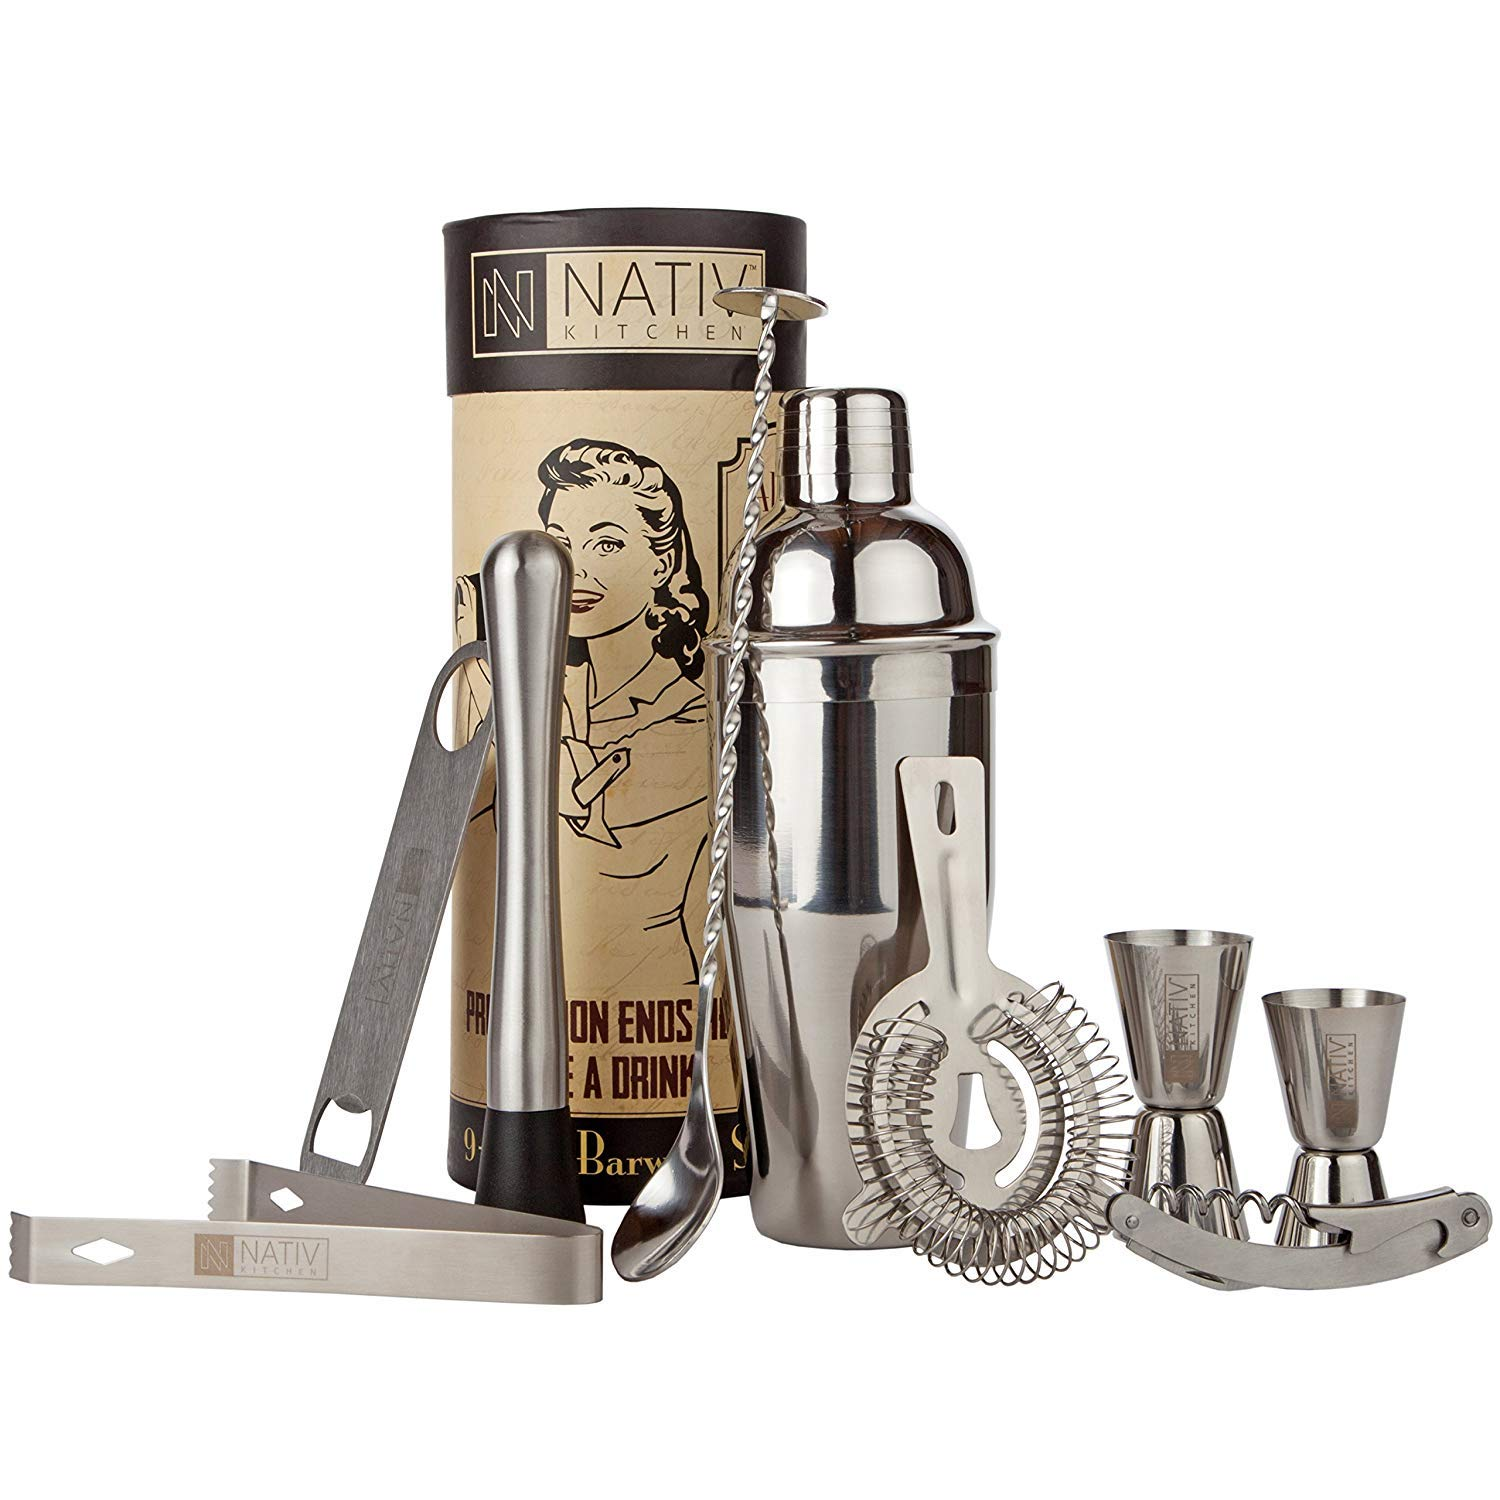 Bartender Kit with Cocktail Shaker - Stainless Steel Cocktail Shaker Set and Mixology Kit - Perfect Home Bar Accessories - 9 Piece Bar Set by Nativ Kitchen